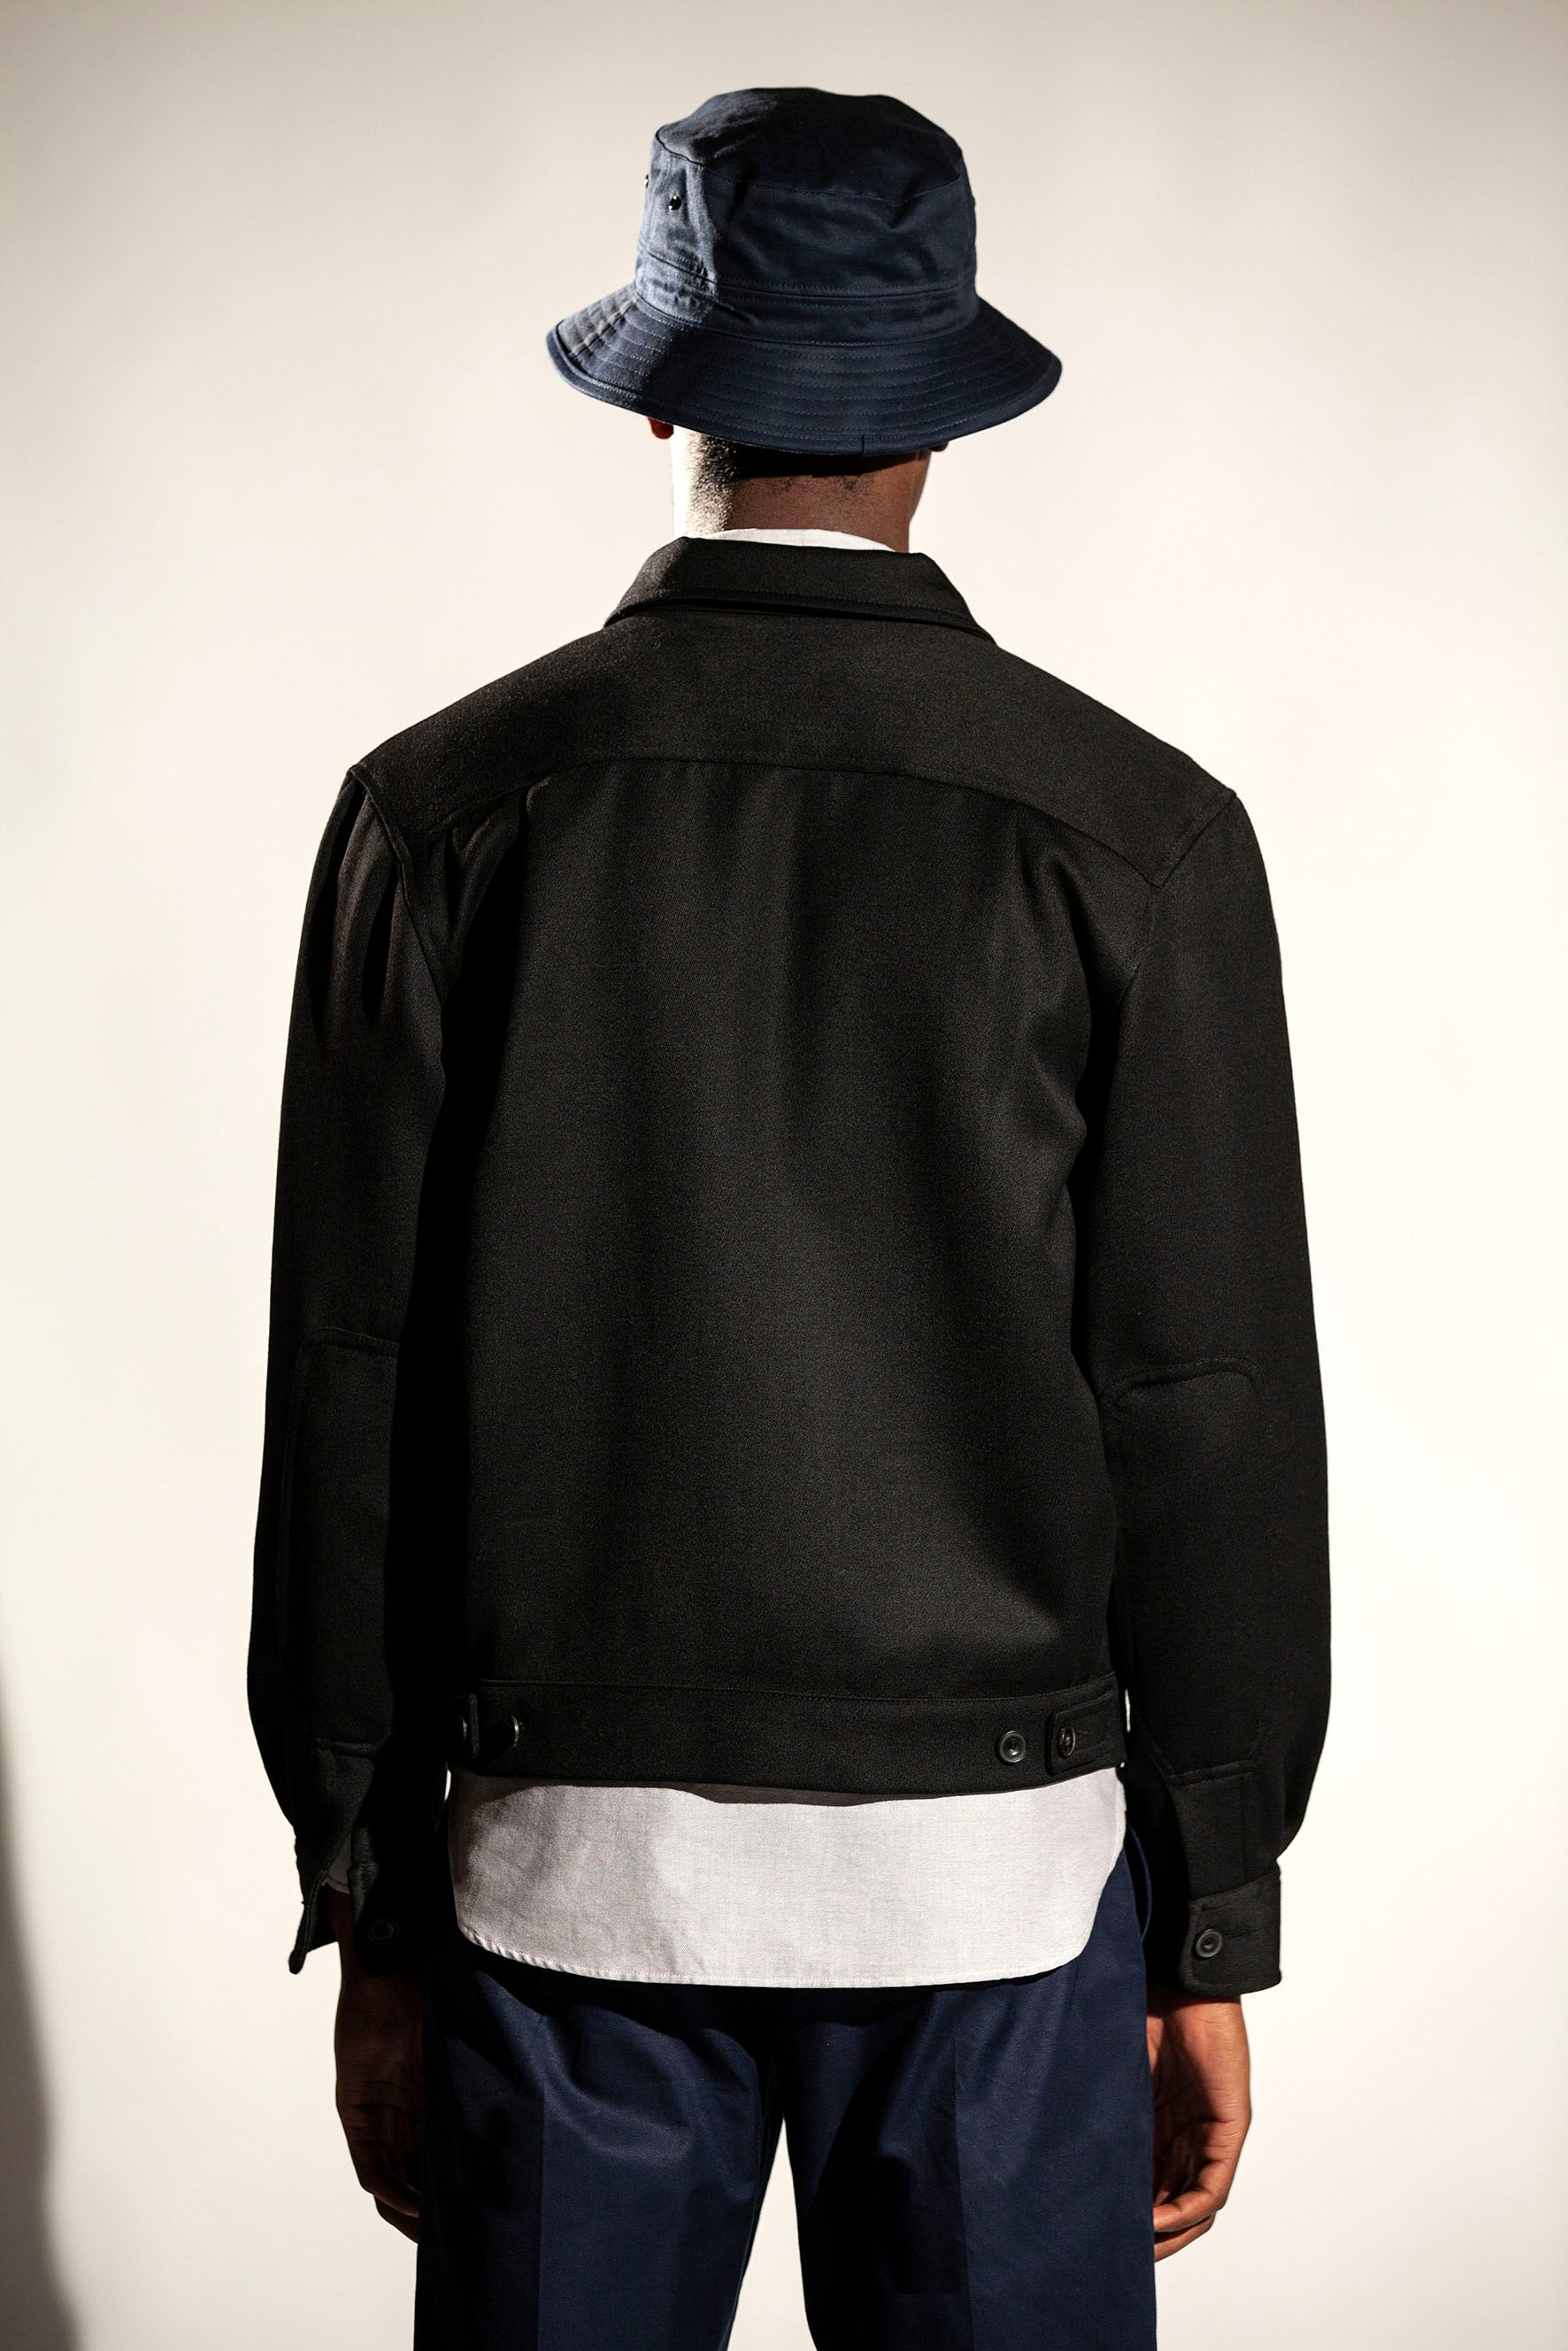 Lined Cropped Jacket - Black Twill